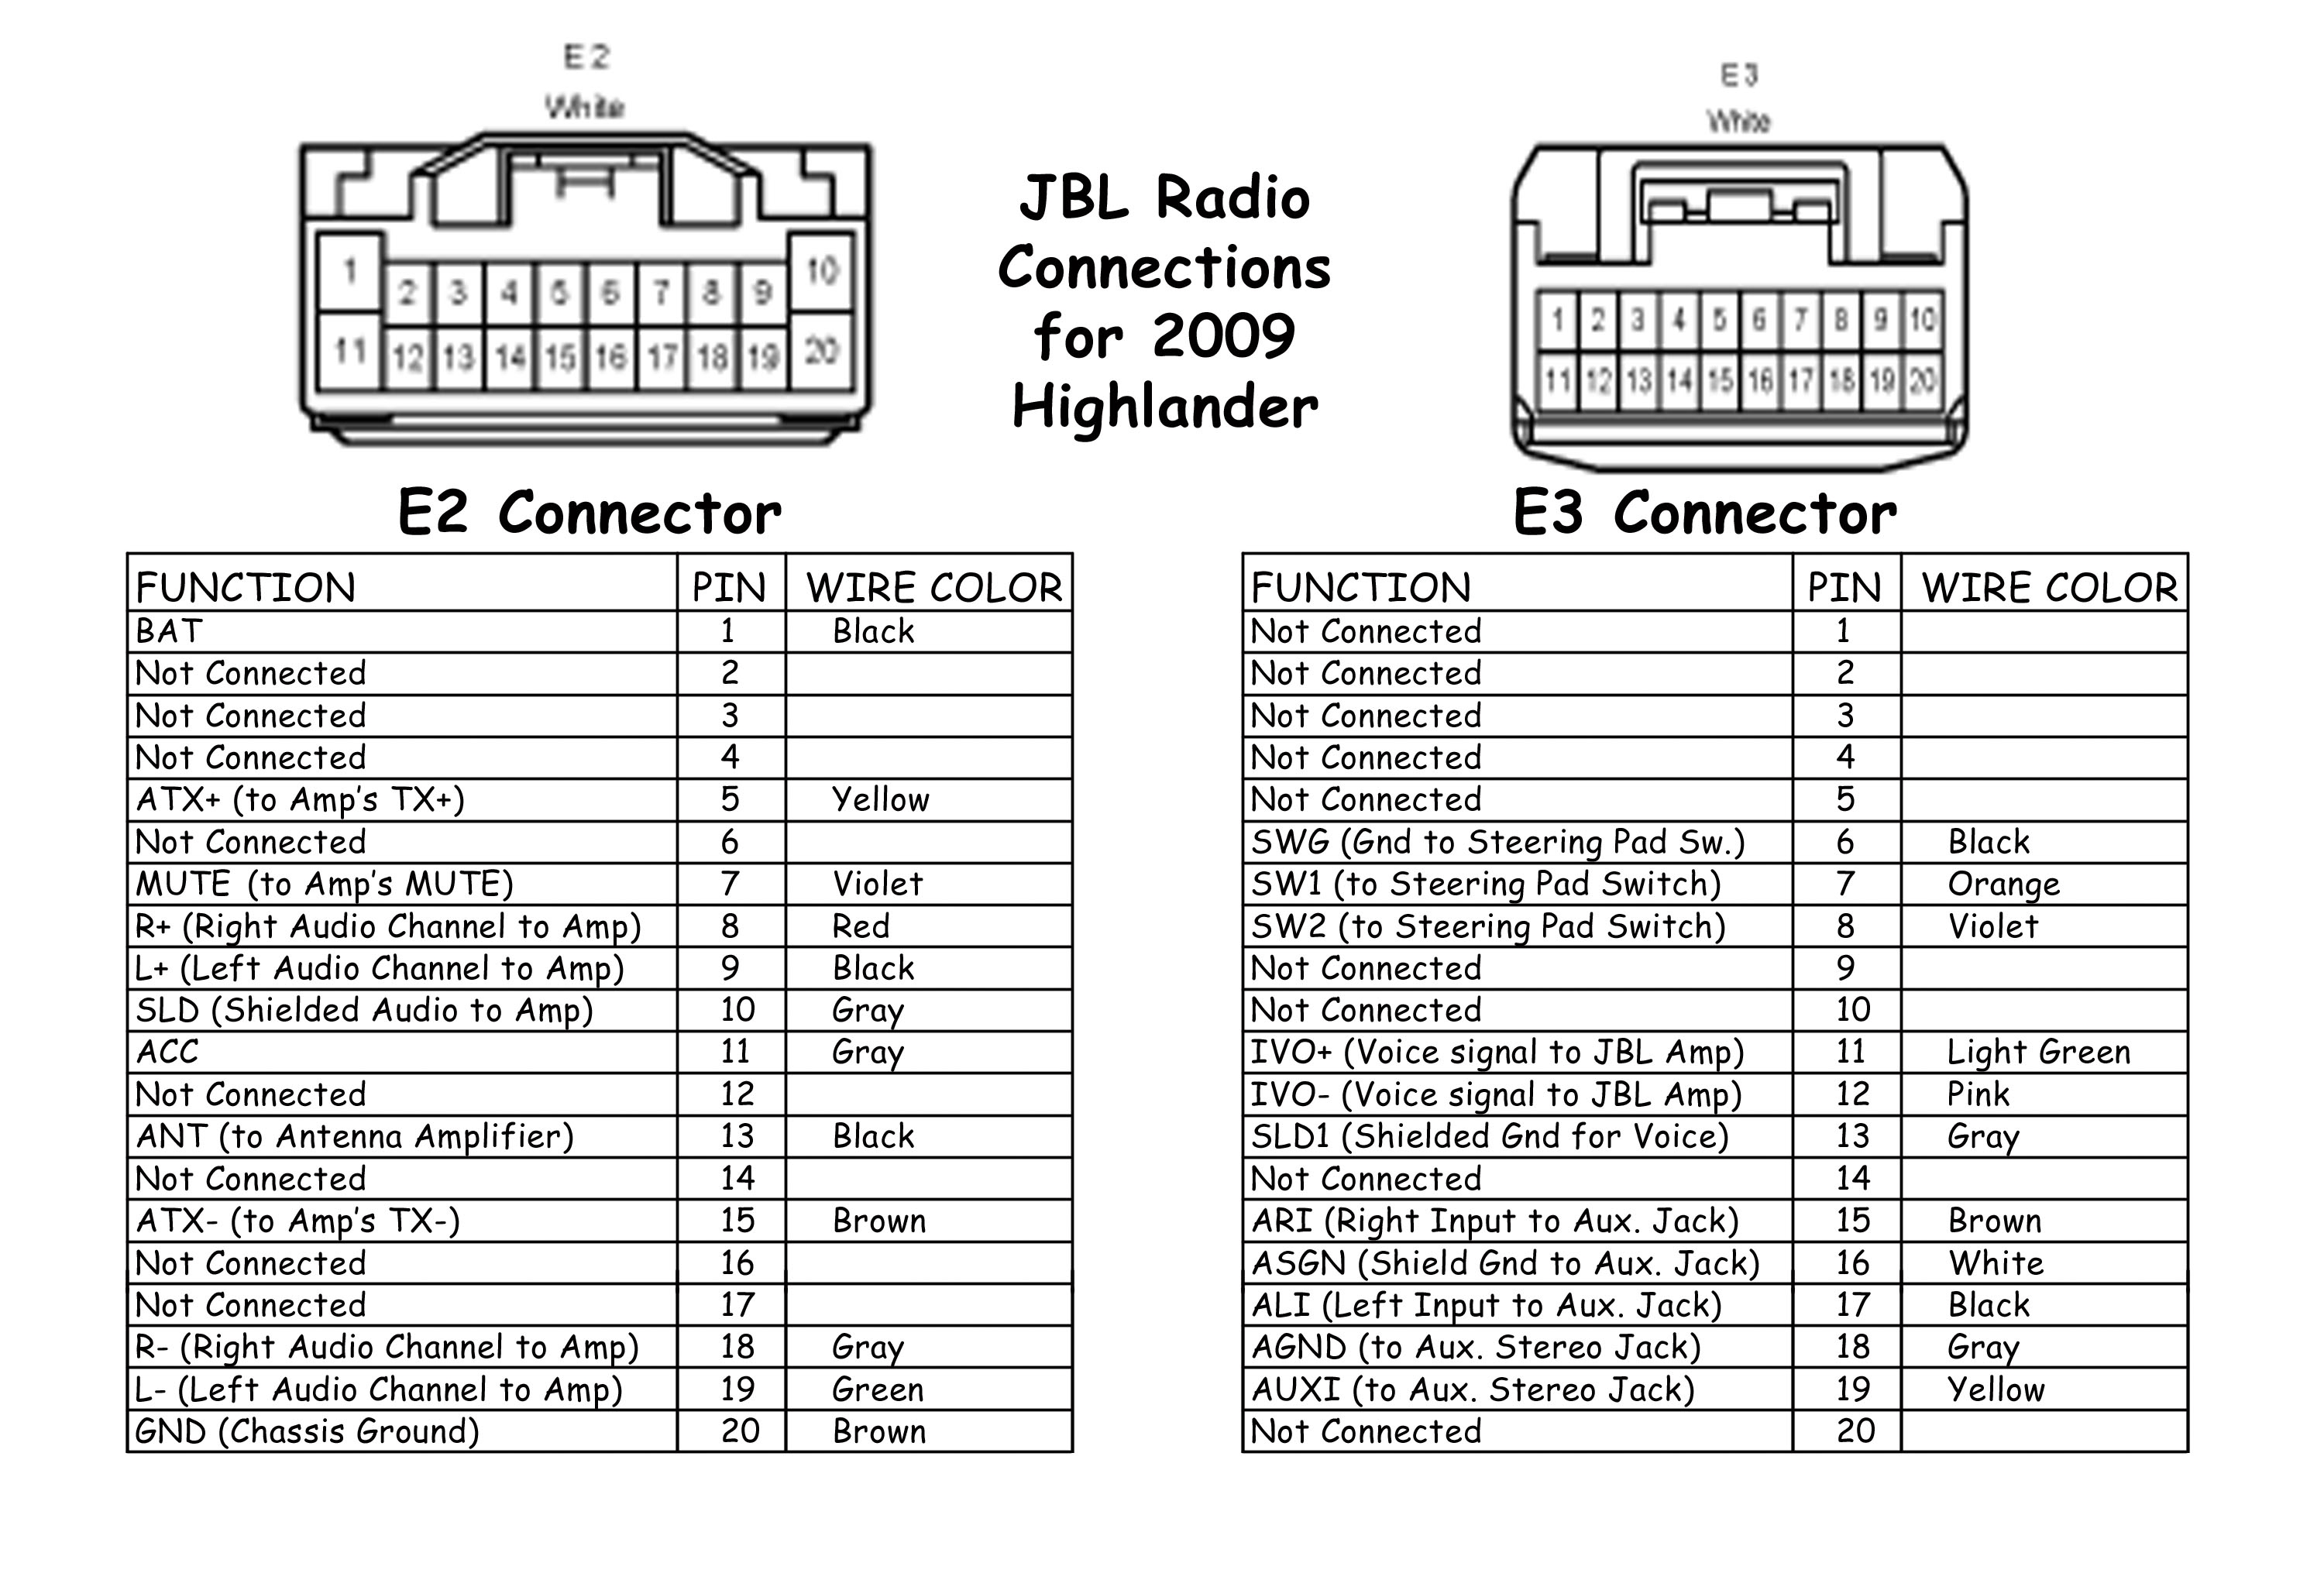 2003 toyota avalon stereo wiring diagram Download-Toyota Sequoia Stereo Wiring Diagram Wiring Diagram toyota Ta A Radio Home Questions New 2003 18-g